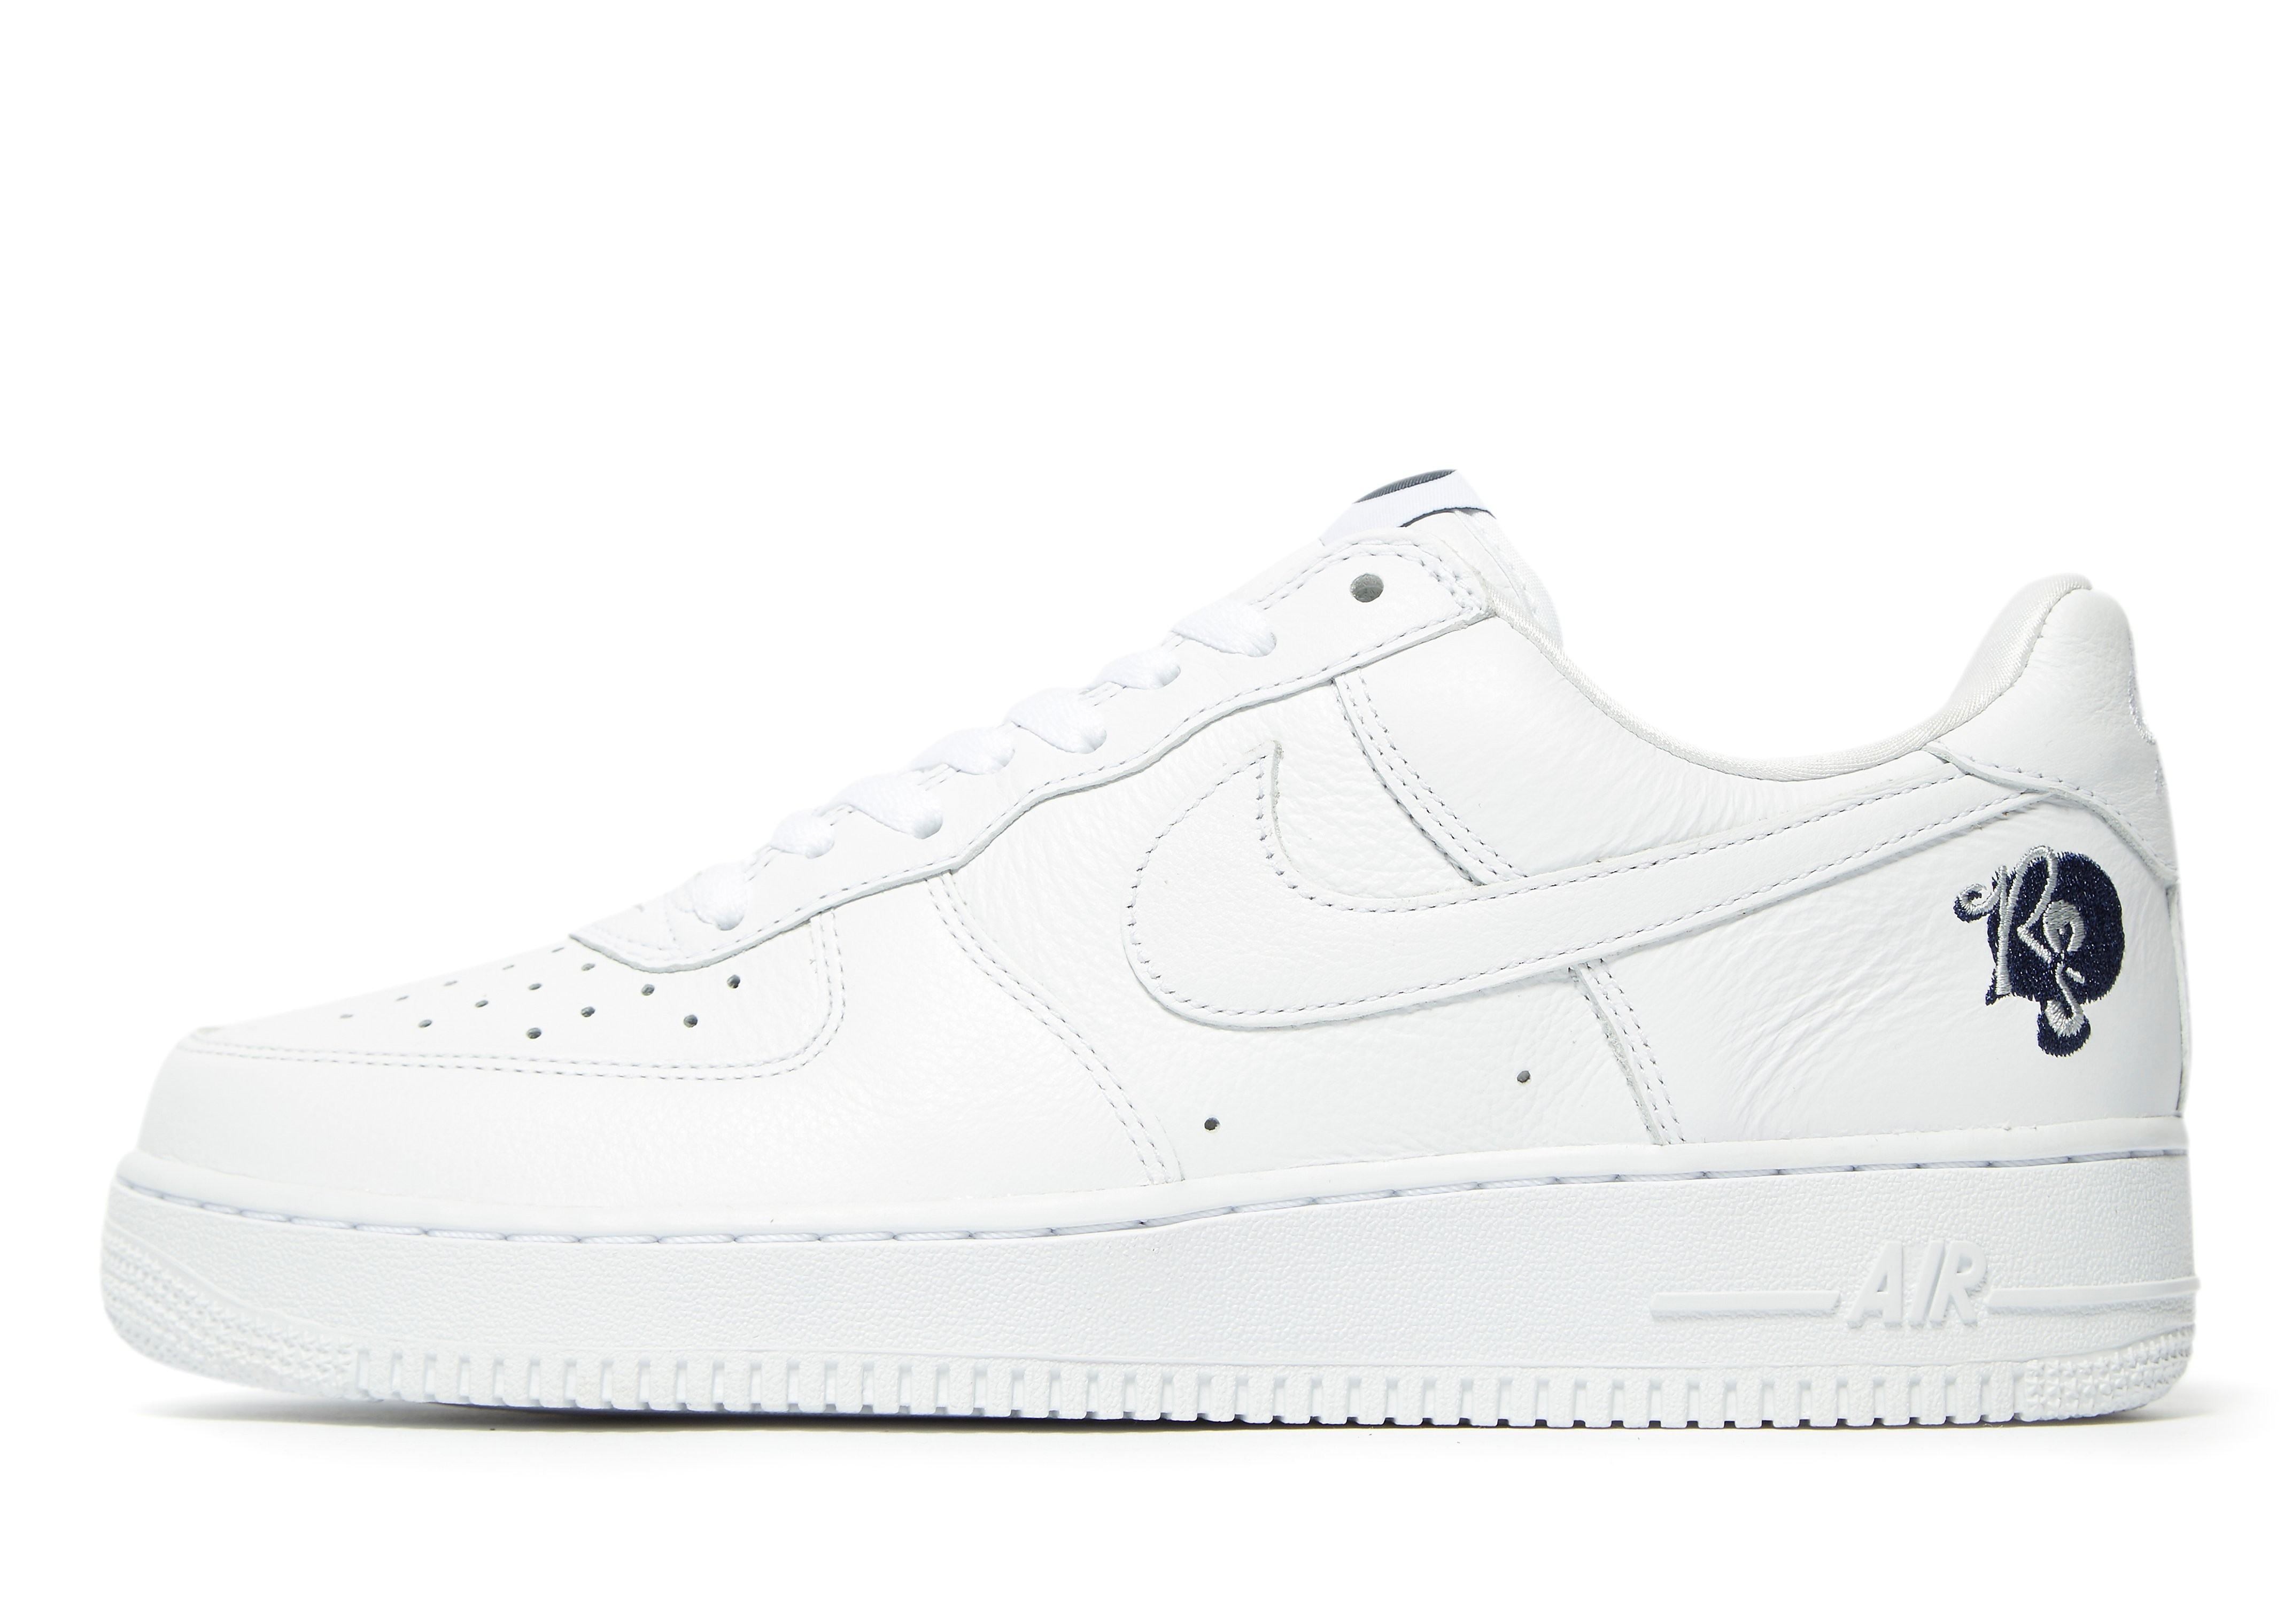 Nike  Air Force 1 '07 Roc-A-Fella